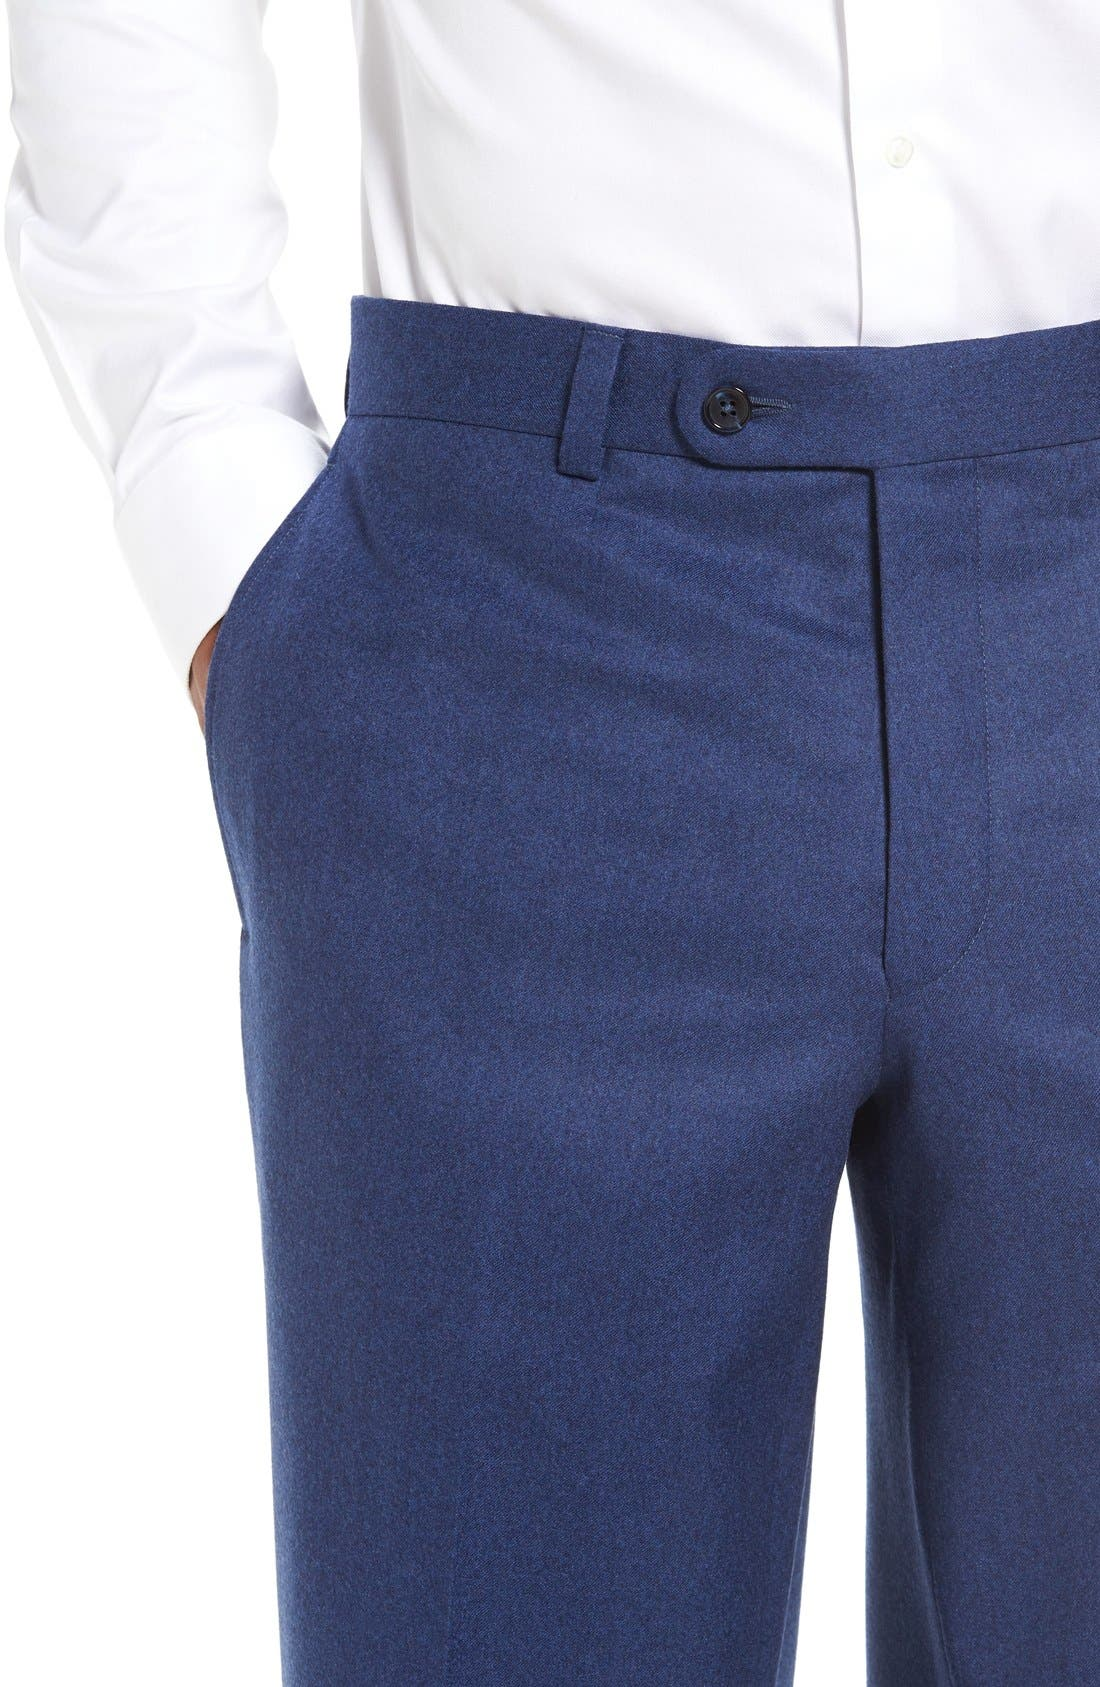 'Ryan' Classic Fit Trousers,                             Alternate thumbnail 15, color,